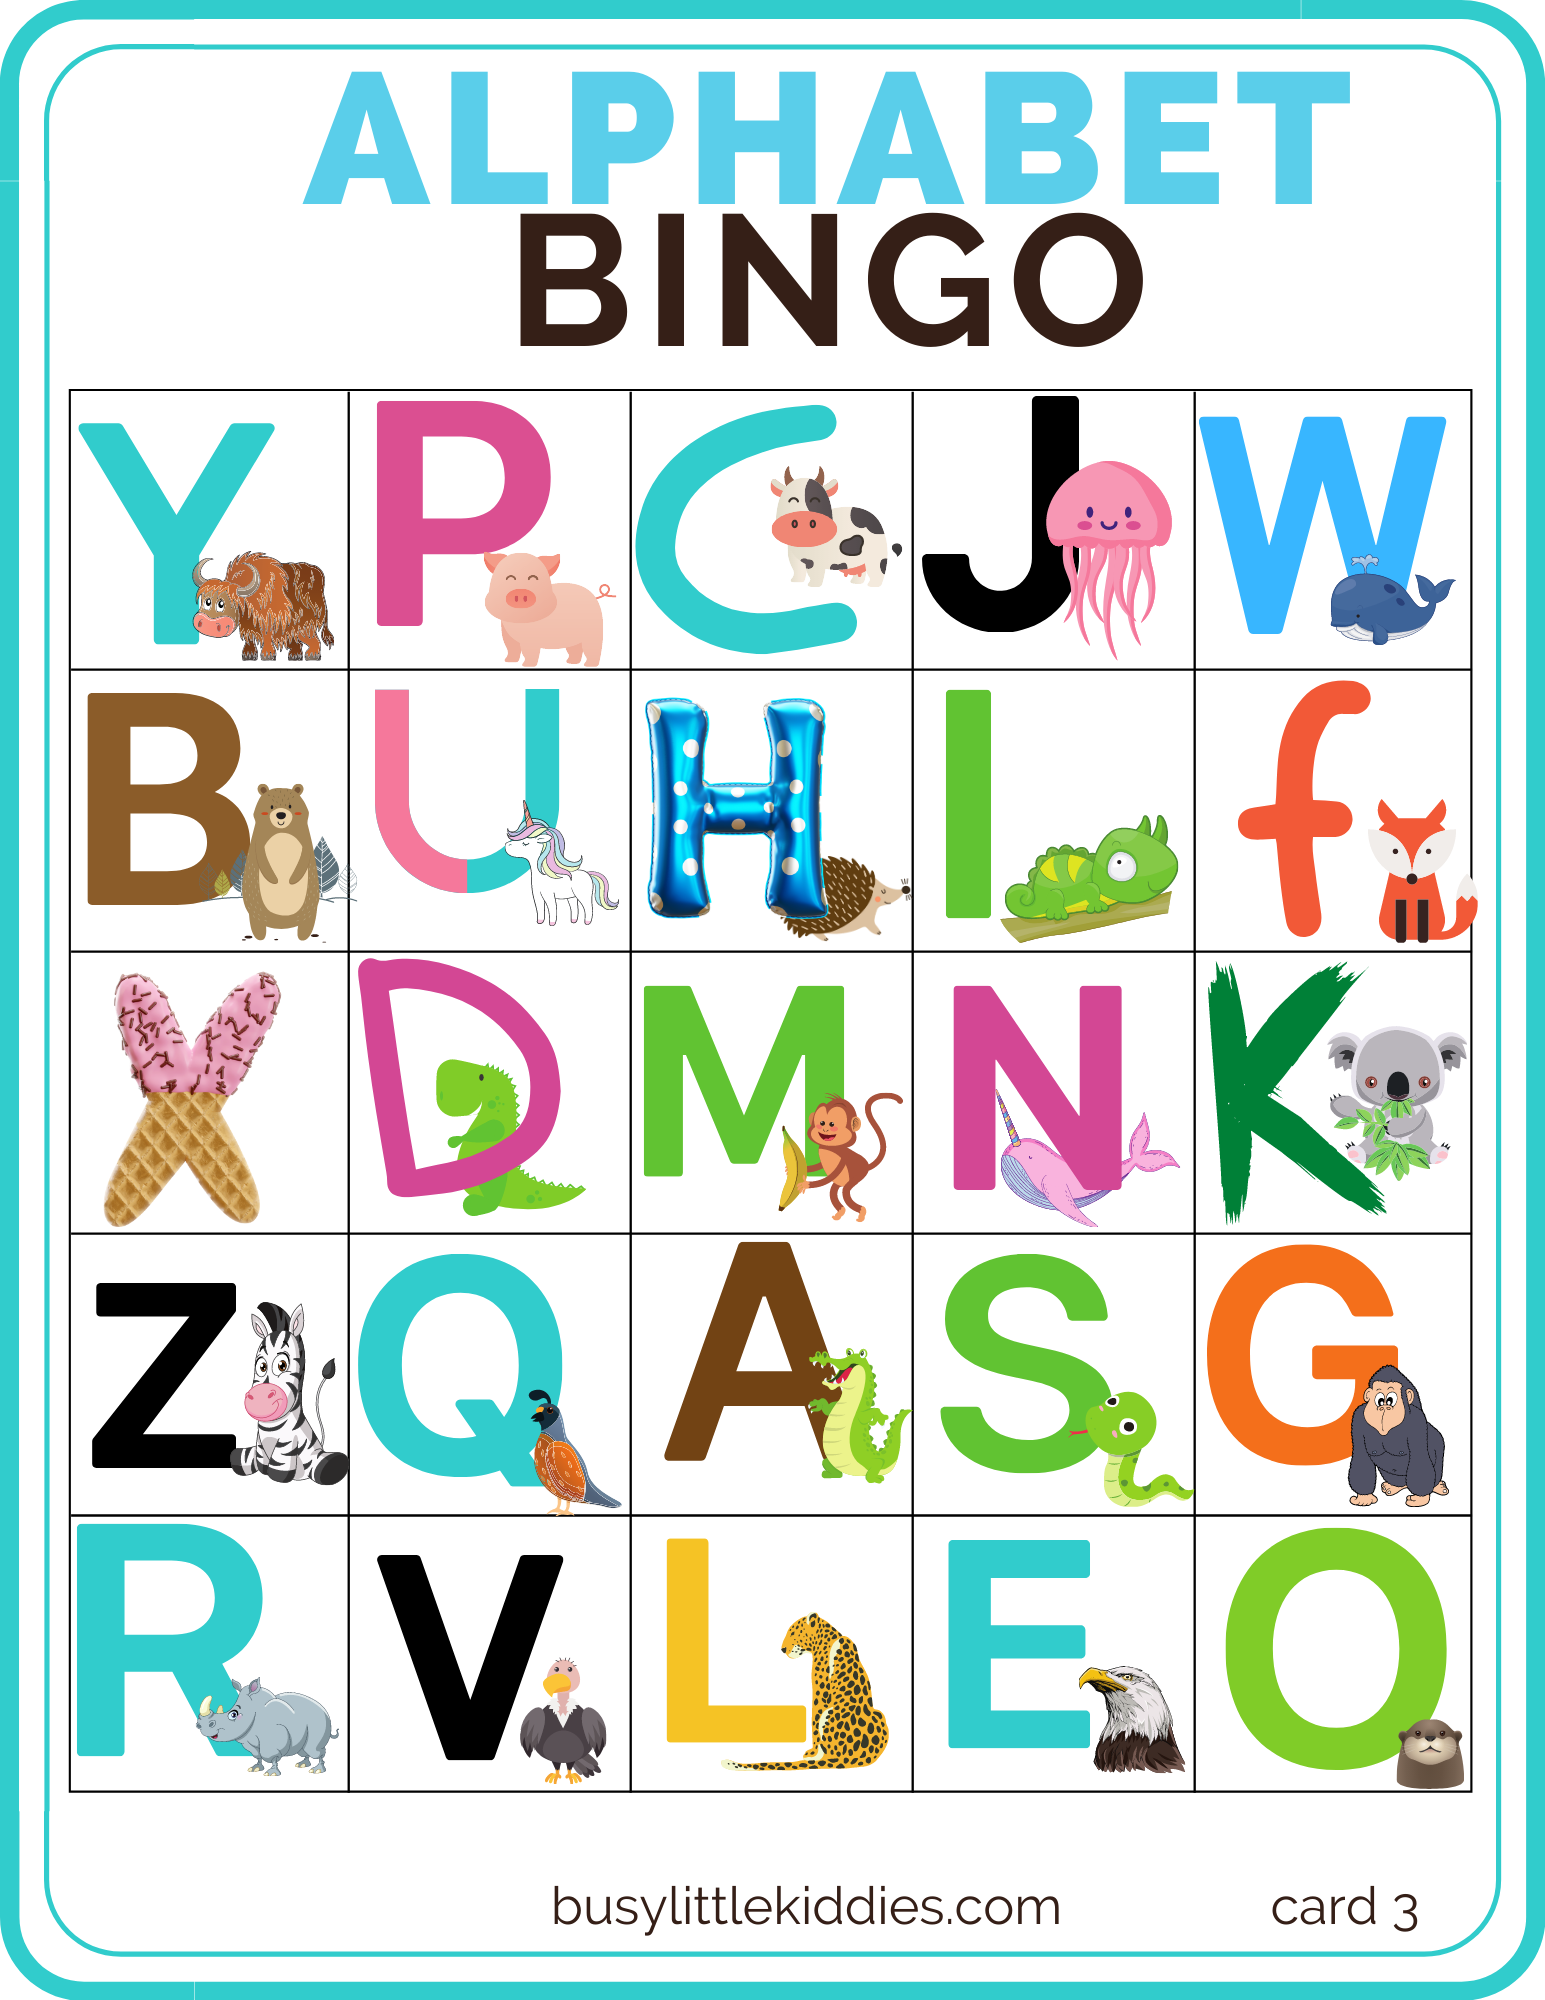 Alphabet Bingo Free Printable With Pictures For Kids From 3 Years Old Busy Little Kiddies